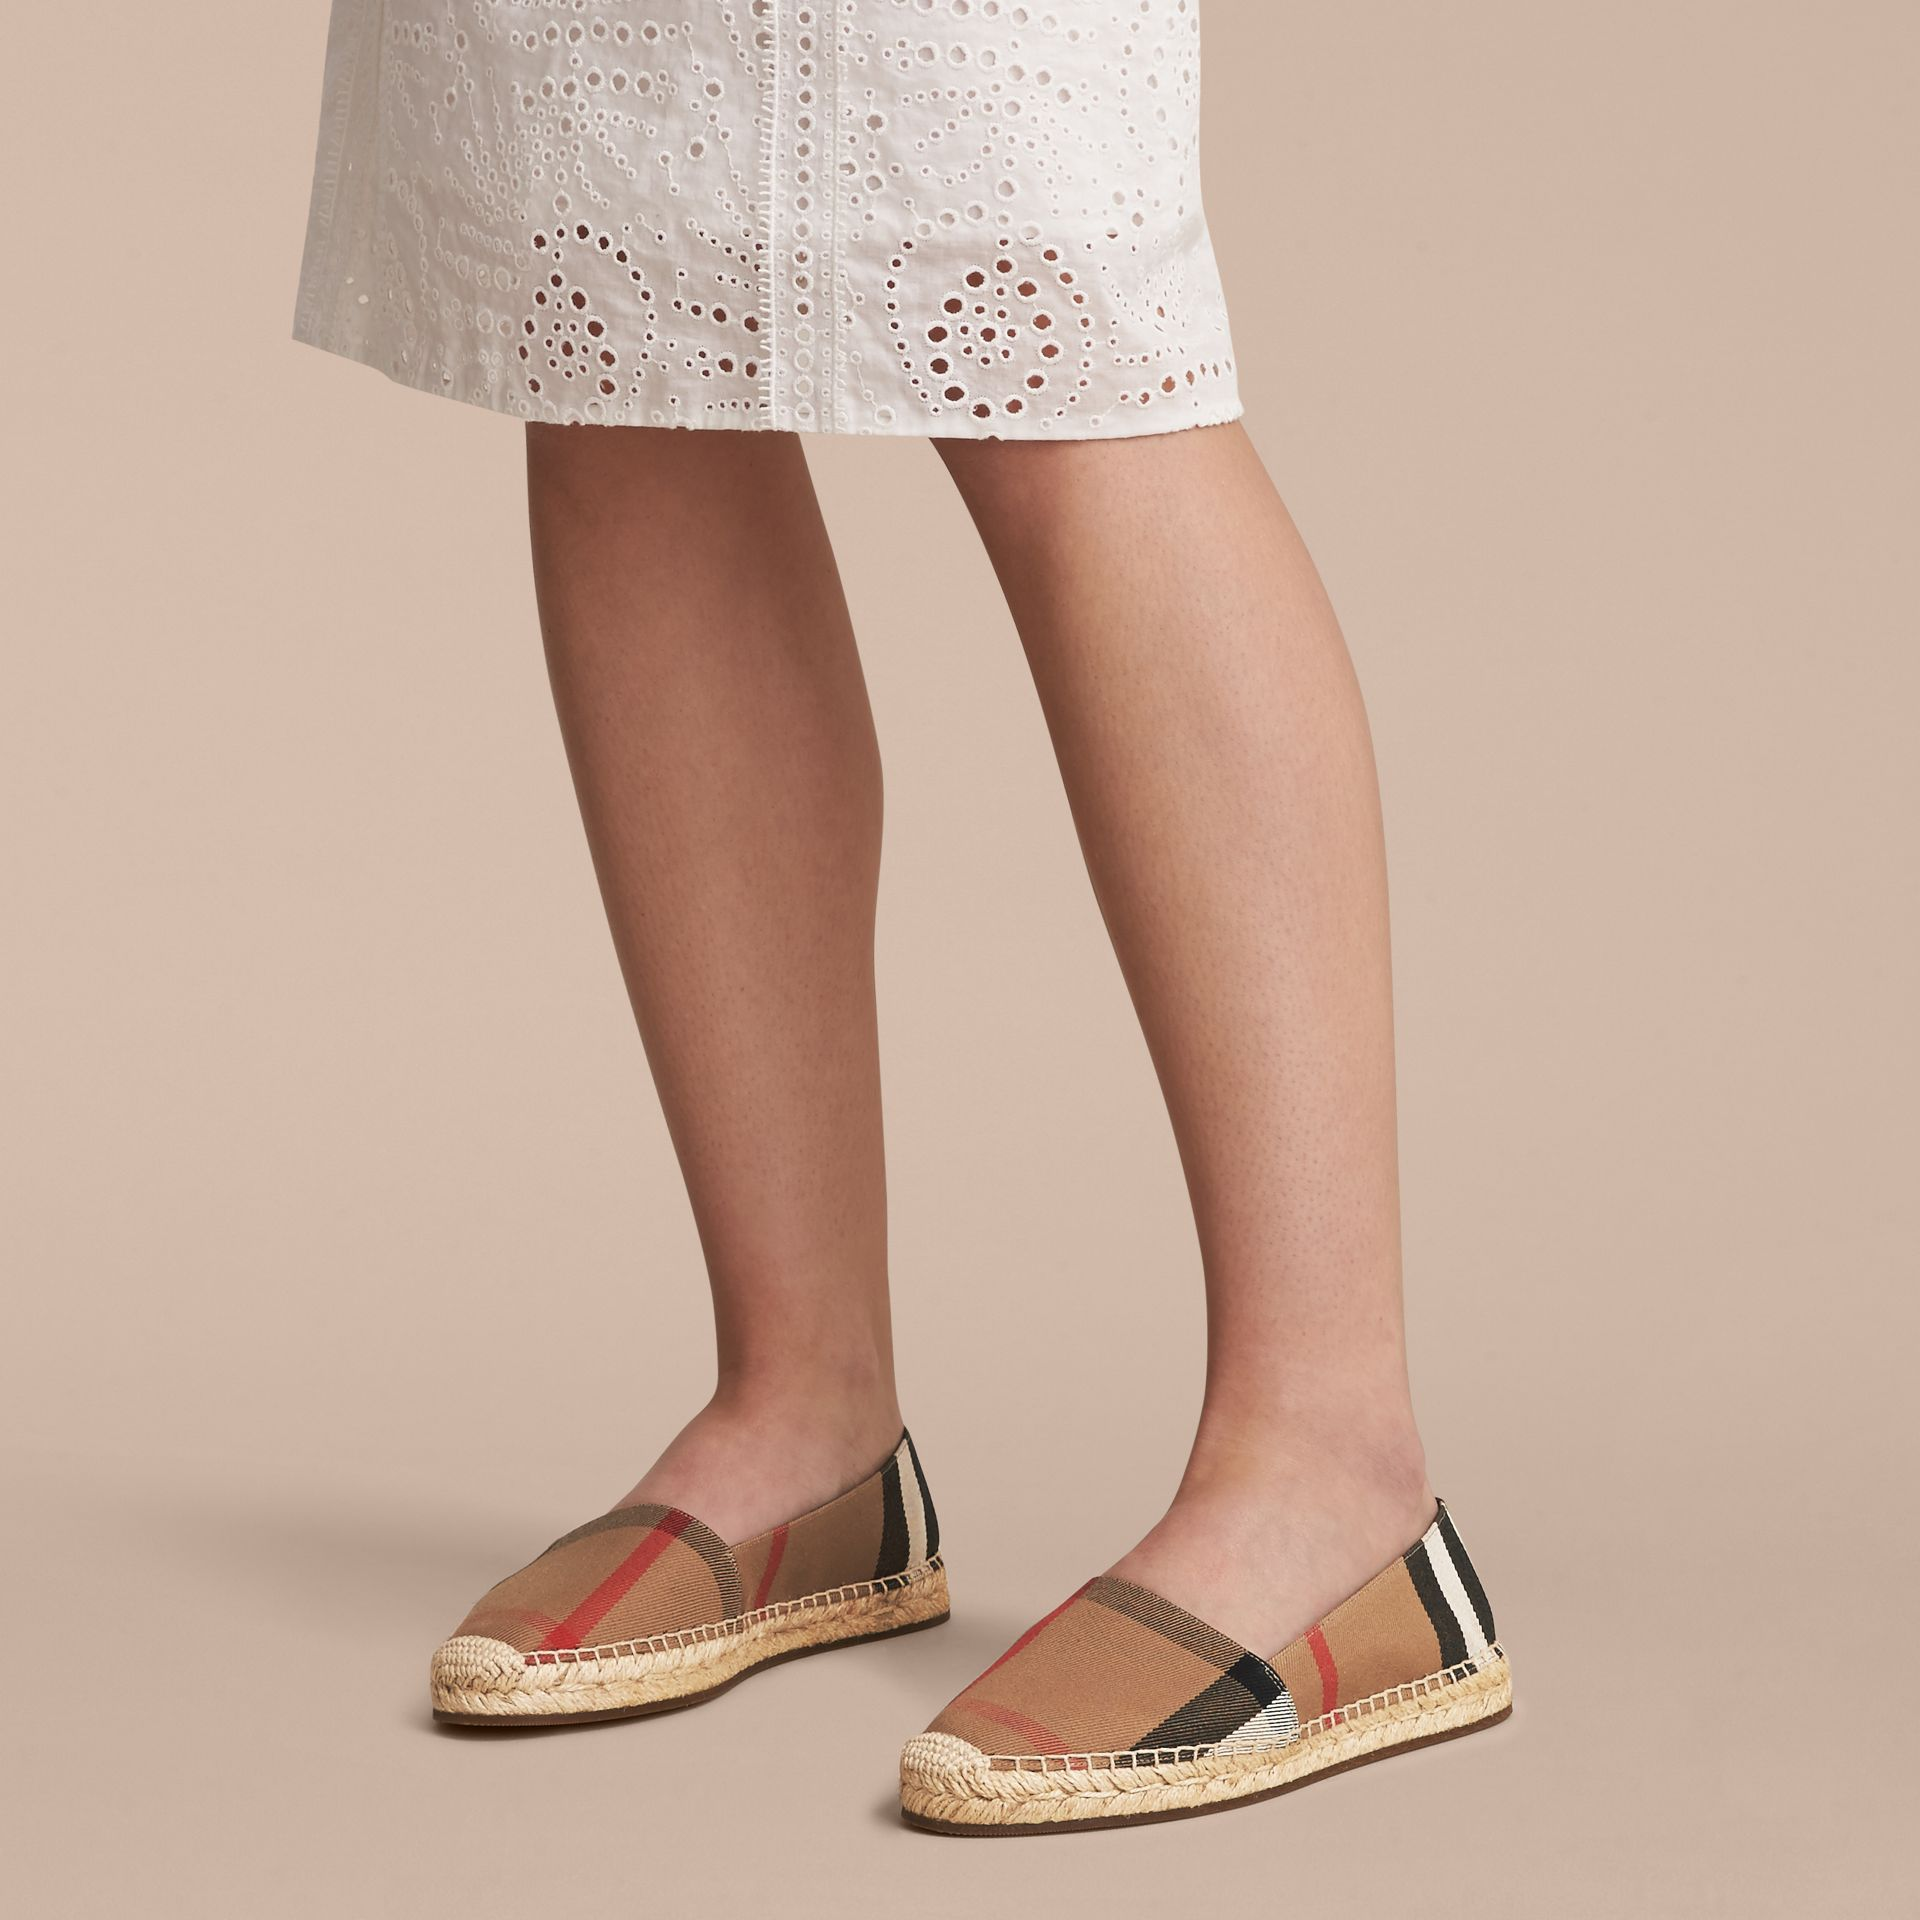 Leather Trim Canvas Check Espadrilles in Classic - Women | Burberry - gallery image 2